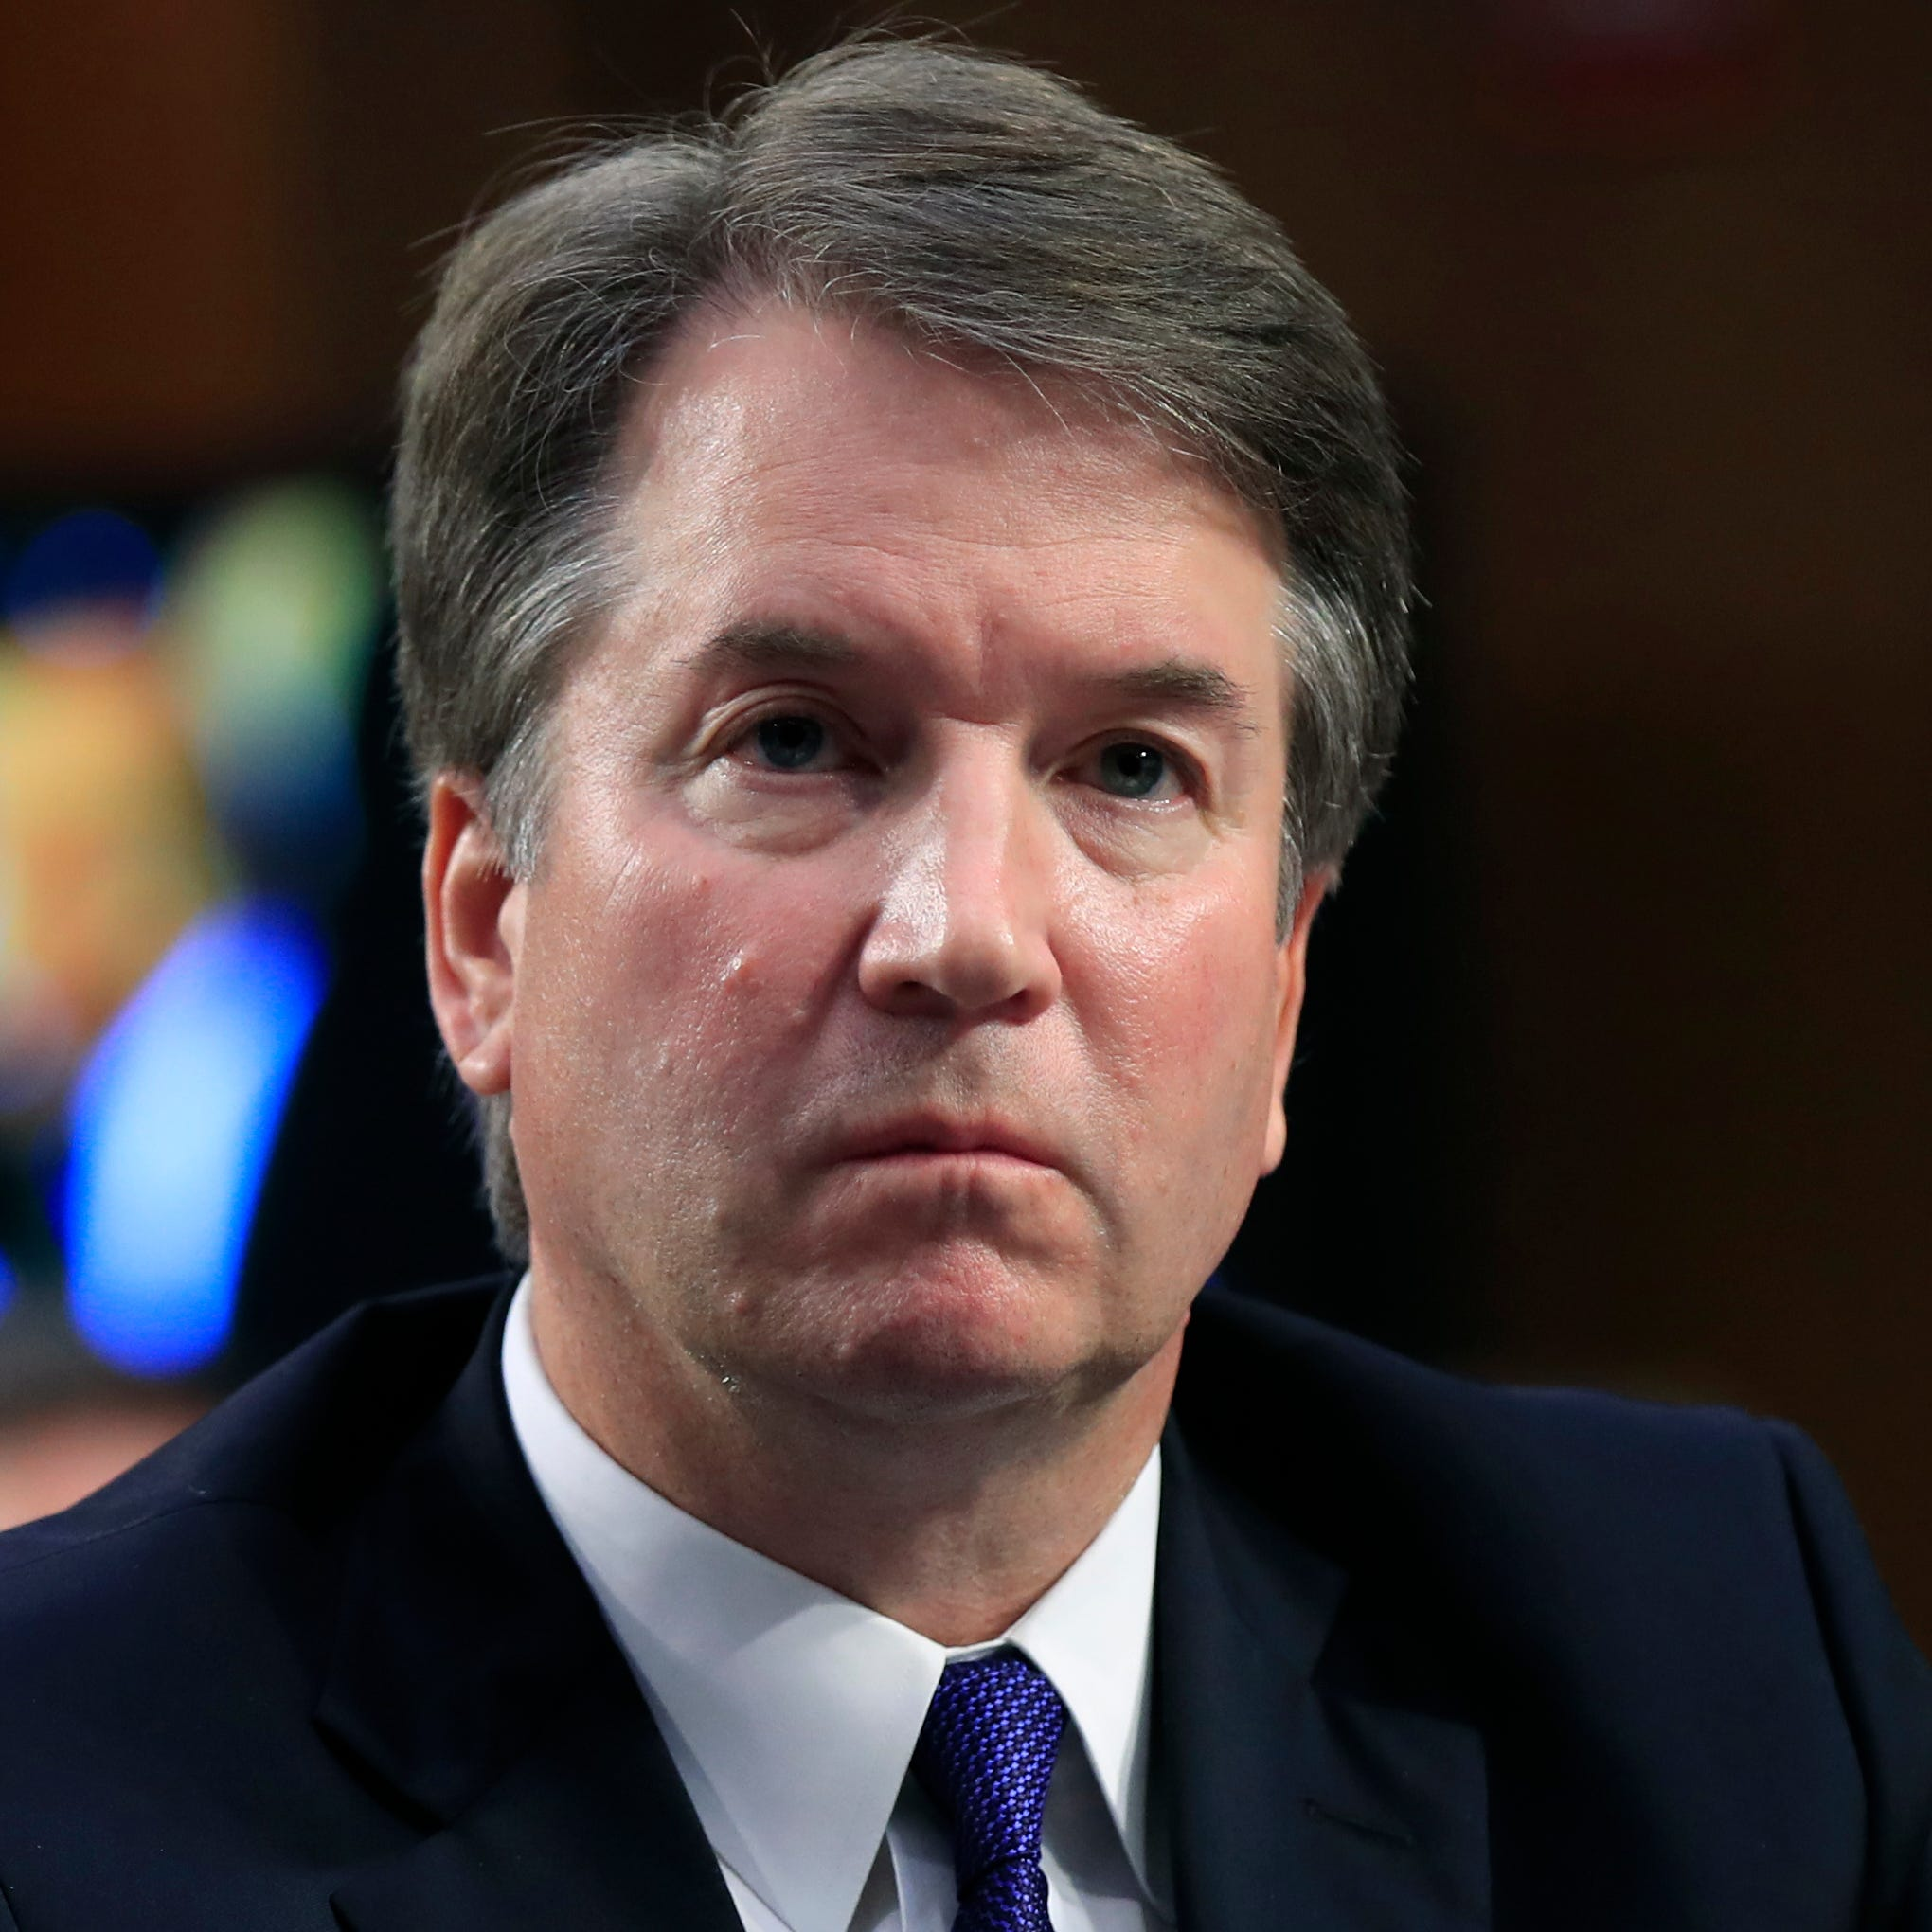 Supreme Court nominee Brett Kavanaugh is pictured listening during a Senate Judiciary Committee hearing on Capitol Hill.